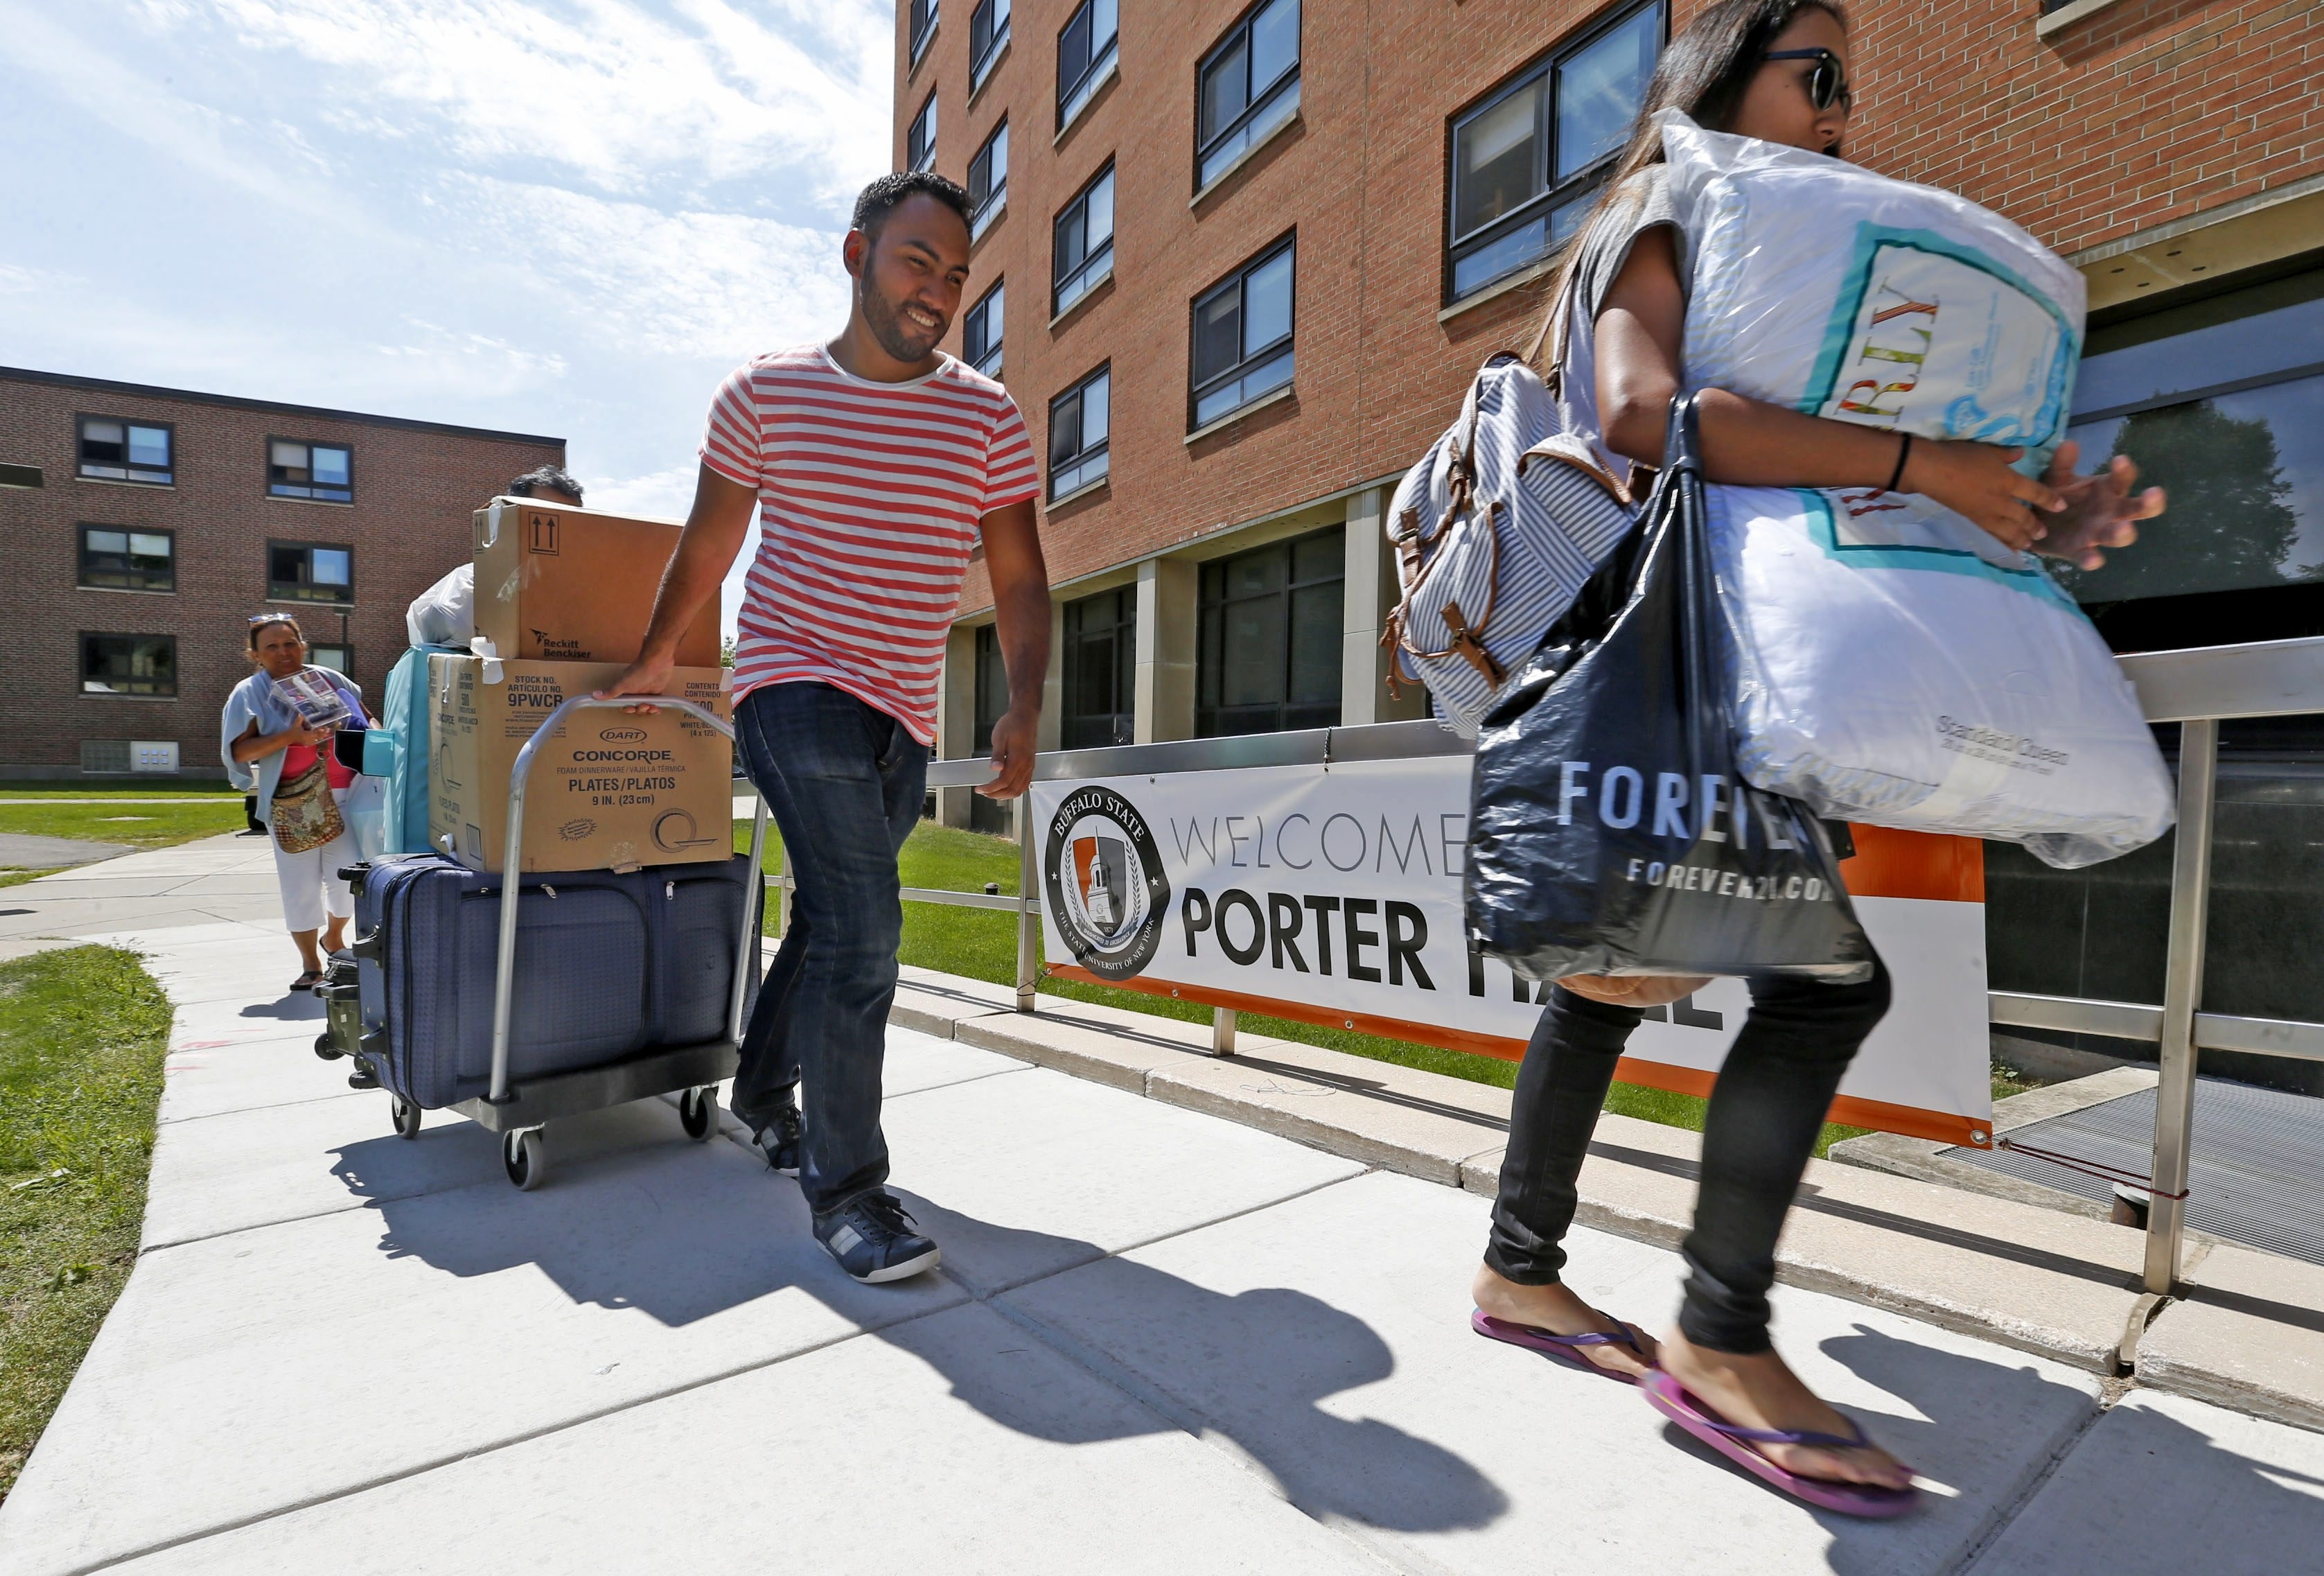 Freshmen moving into Porter Hall at SUNY Buffalo State have found a campus bursting at the seams. Because of the large incoming class, the college has to triple up students in some dorm rooms and has arranged for 200 to live in Canisius College residence halls.